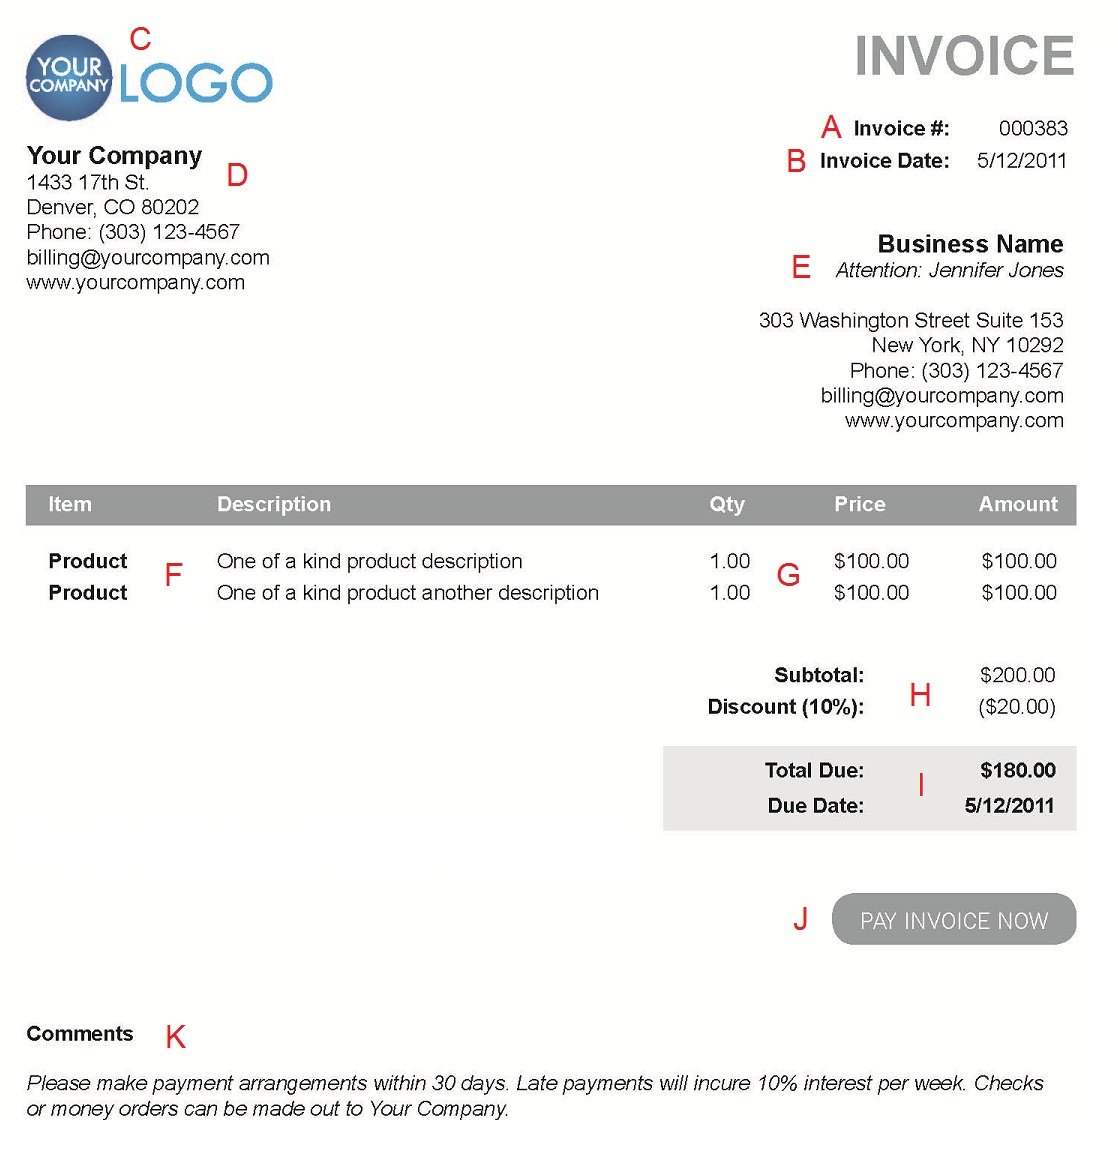 Ultrablogus  Personable The  Different Sections Of An Electronic Payment Invoice With Licious A  With Comely Invoice Discounting Jobs Also Invoice Forms Templates Free In Addition Invoice Template For Email And Invoice Duplicate Book As Well As Software Invoices Additionally Sample Invoice For Contract Work From Paysimplecom With Ultrablogus  Licious The  Different Sections Of An Electronic Payment Invoice With Comely A  And Personable Invoice Discounting Jobs Also Invoice Forms Templates Free In Addition Invoice Template For Email From Paysimplecom